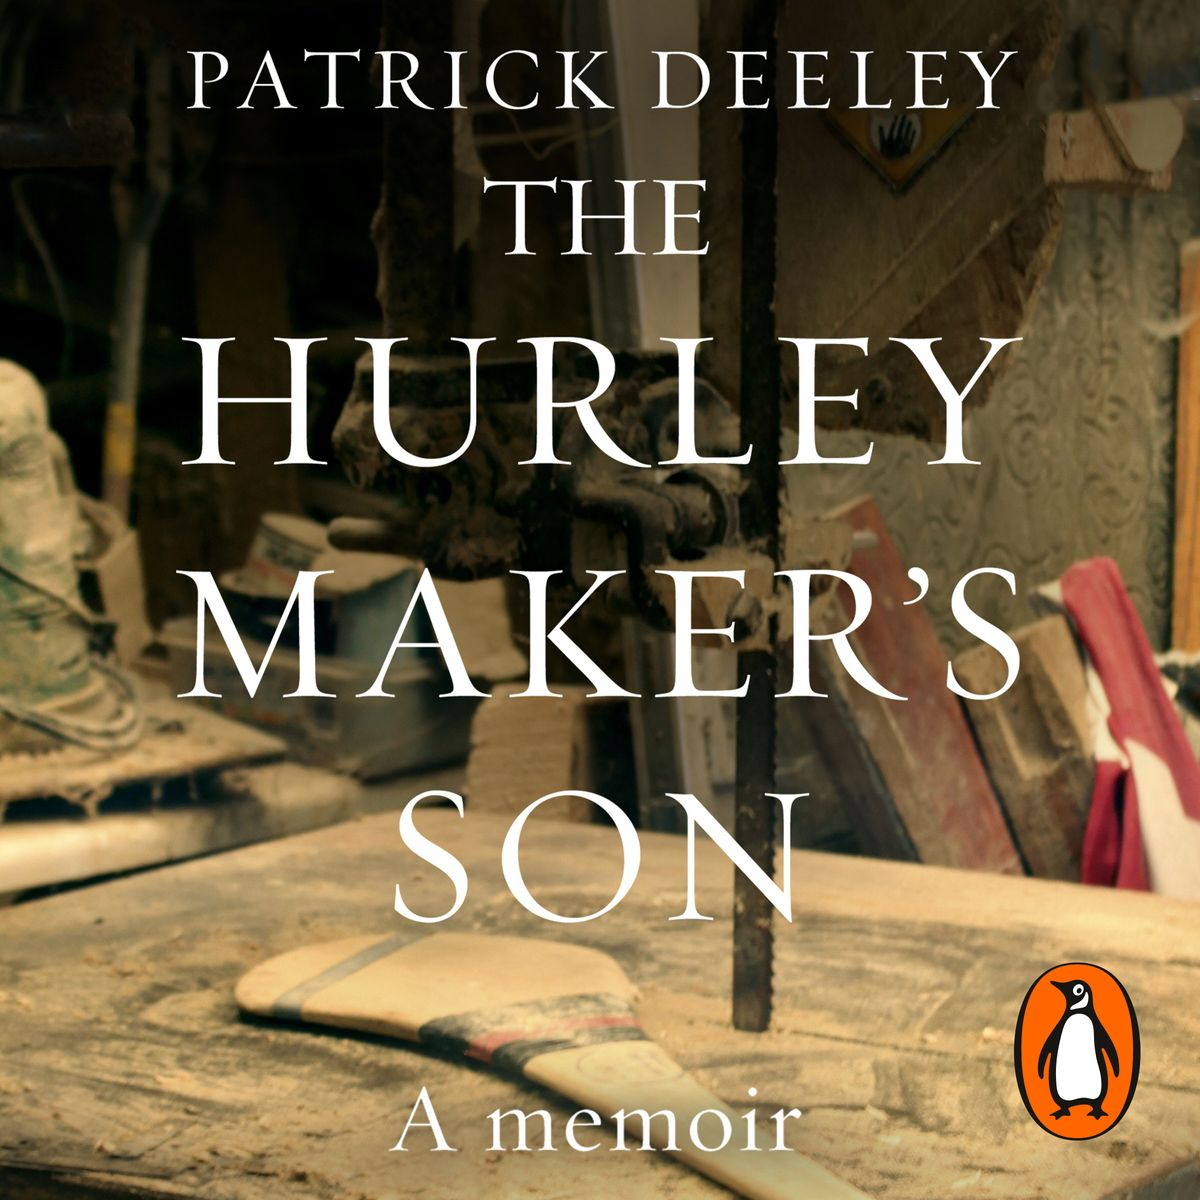 The Hurley Maker's Son by Patrick Deeley, book cover